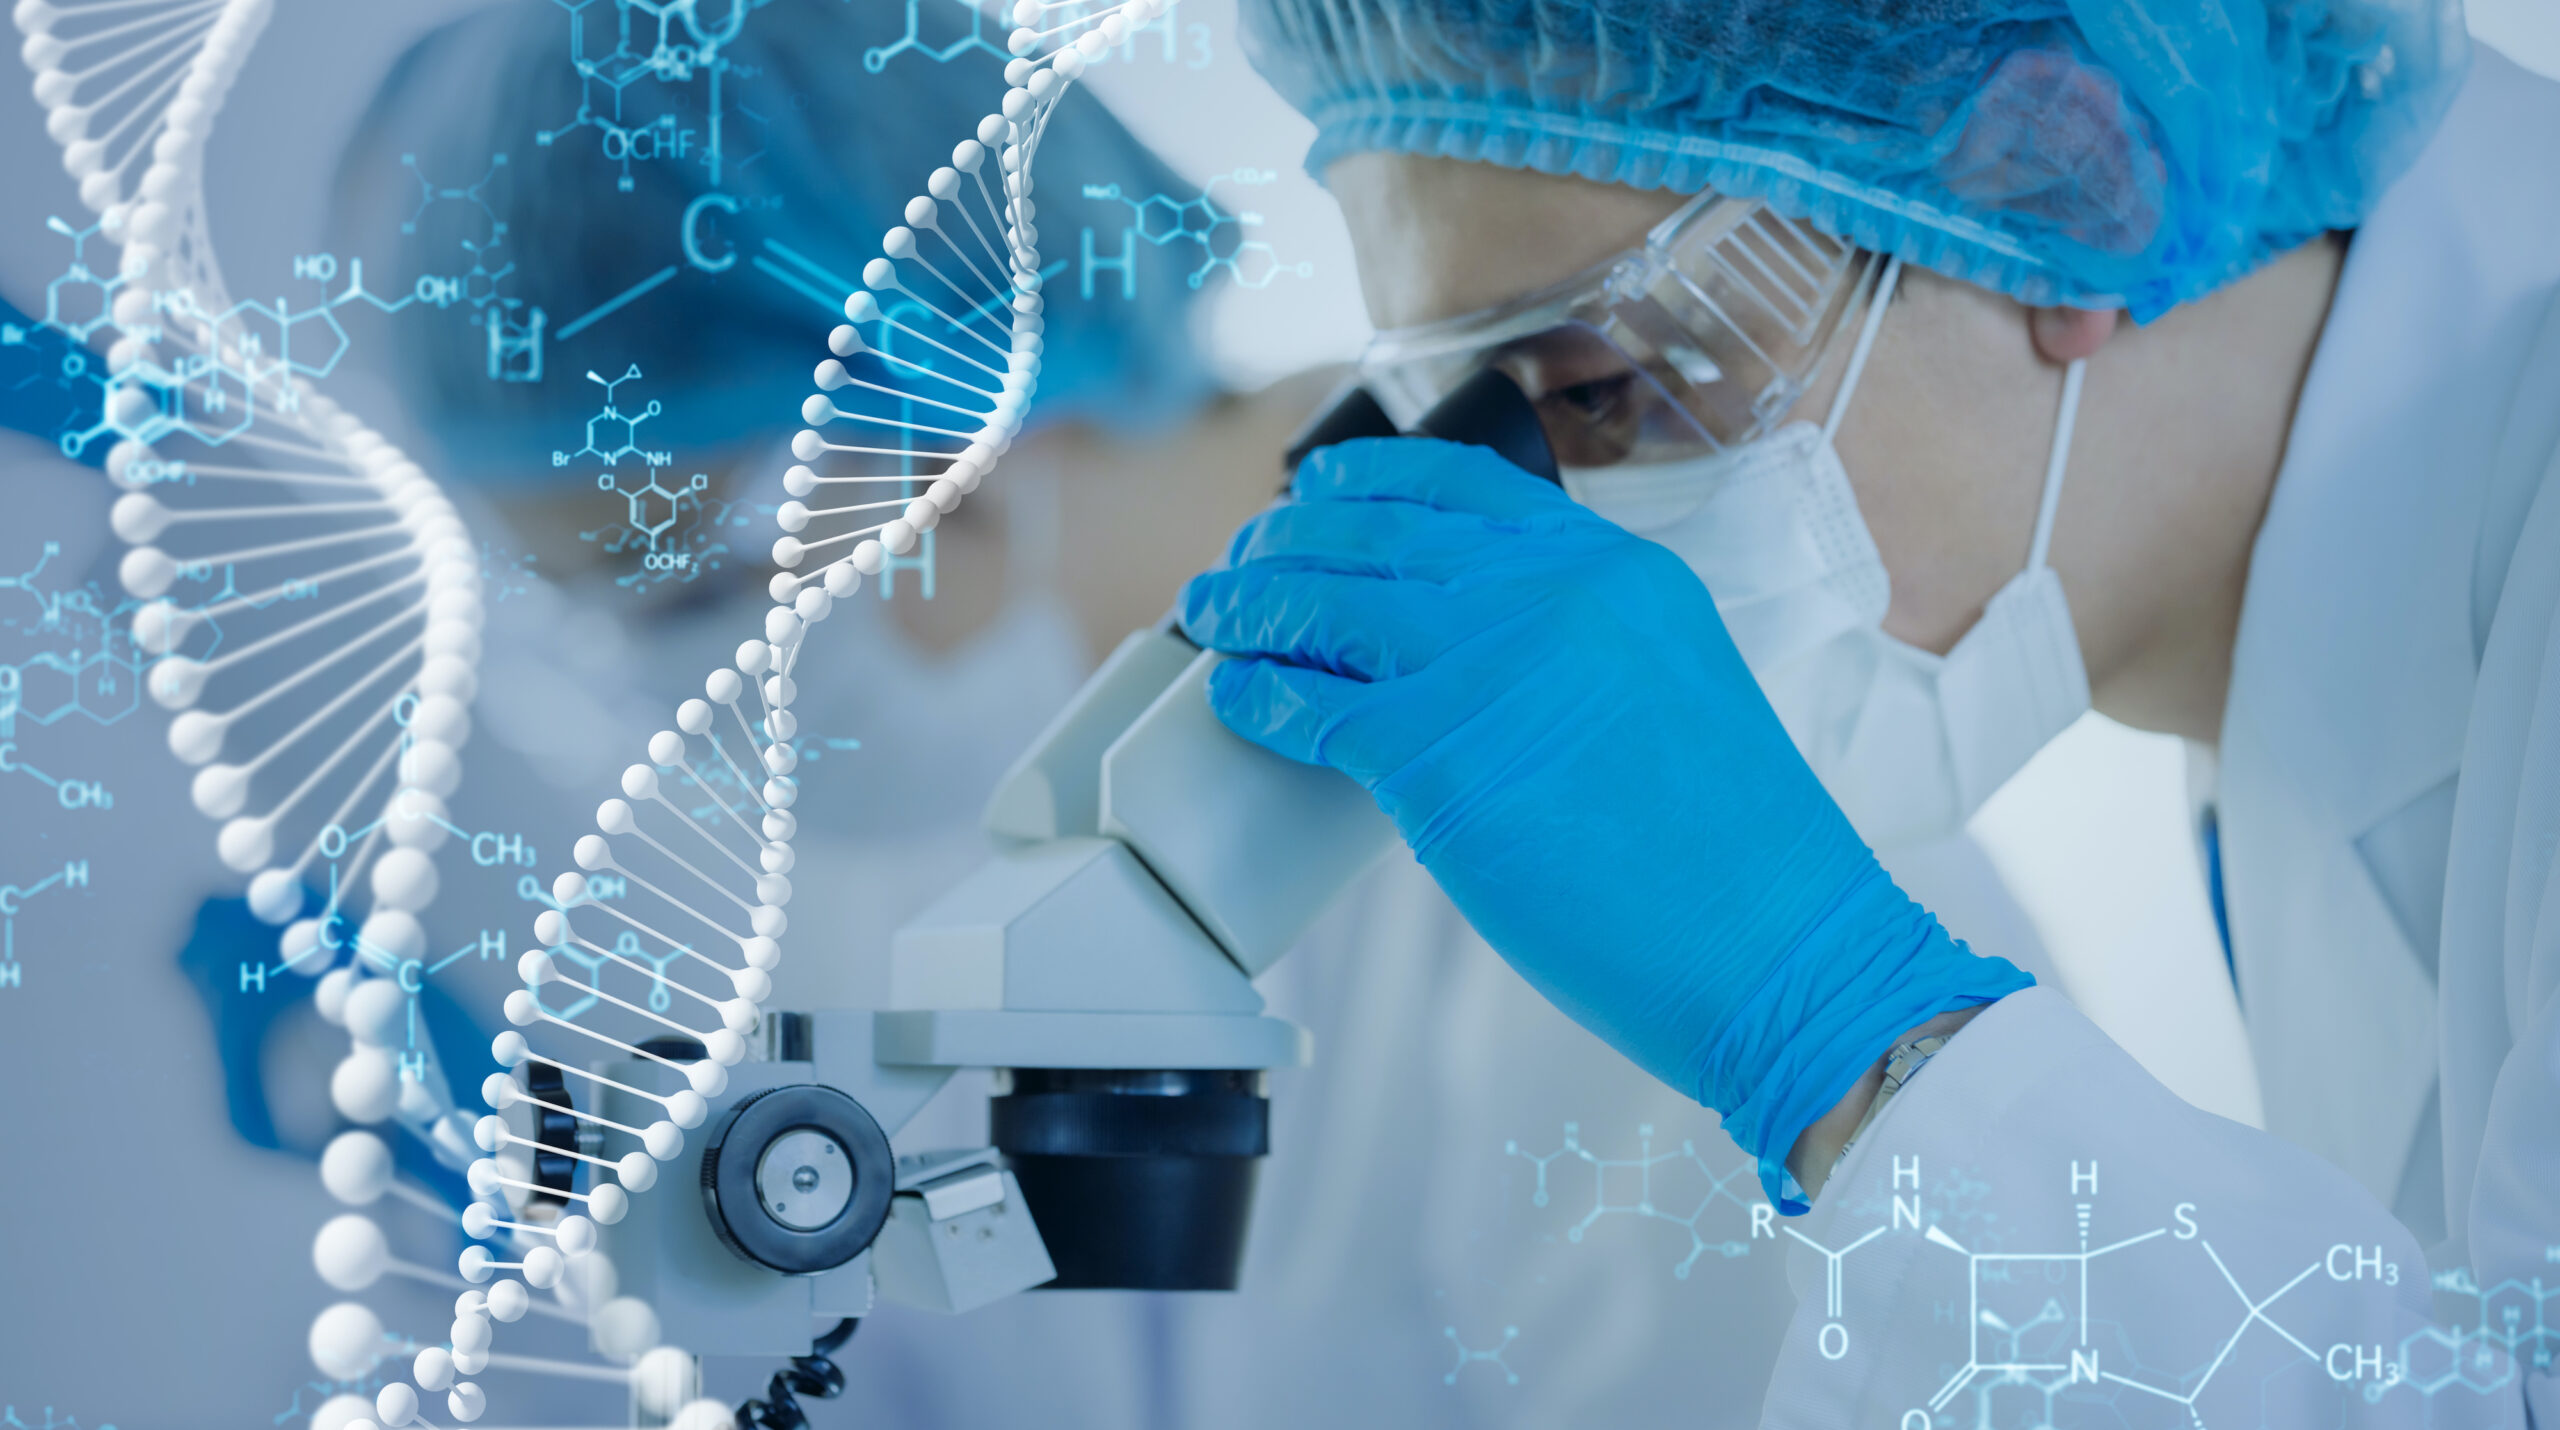 Cell and Gene Therapies: A Giant Step Toward Curative Medicine?